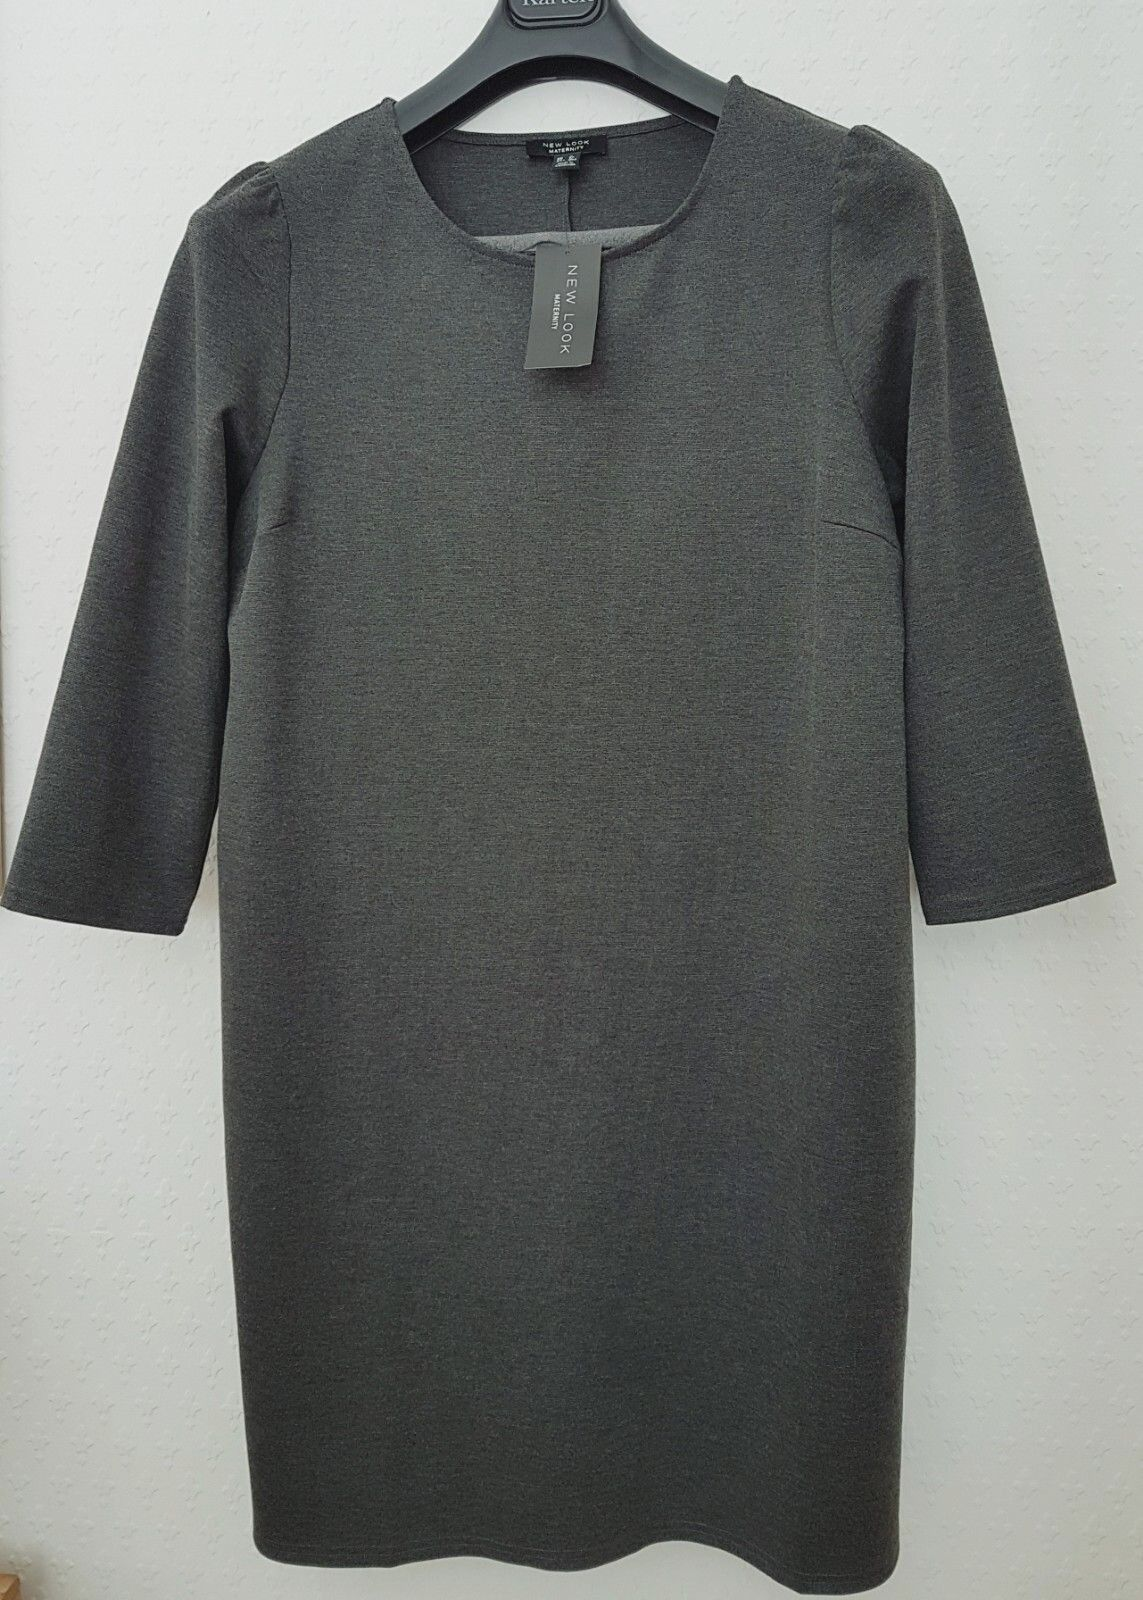 NEW LOOK STRETCHY GREY SPACEDYE PONTE 3 4 SLEEVE FITTED DRESS 16